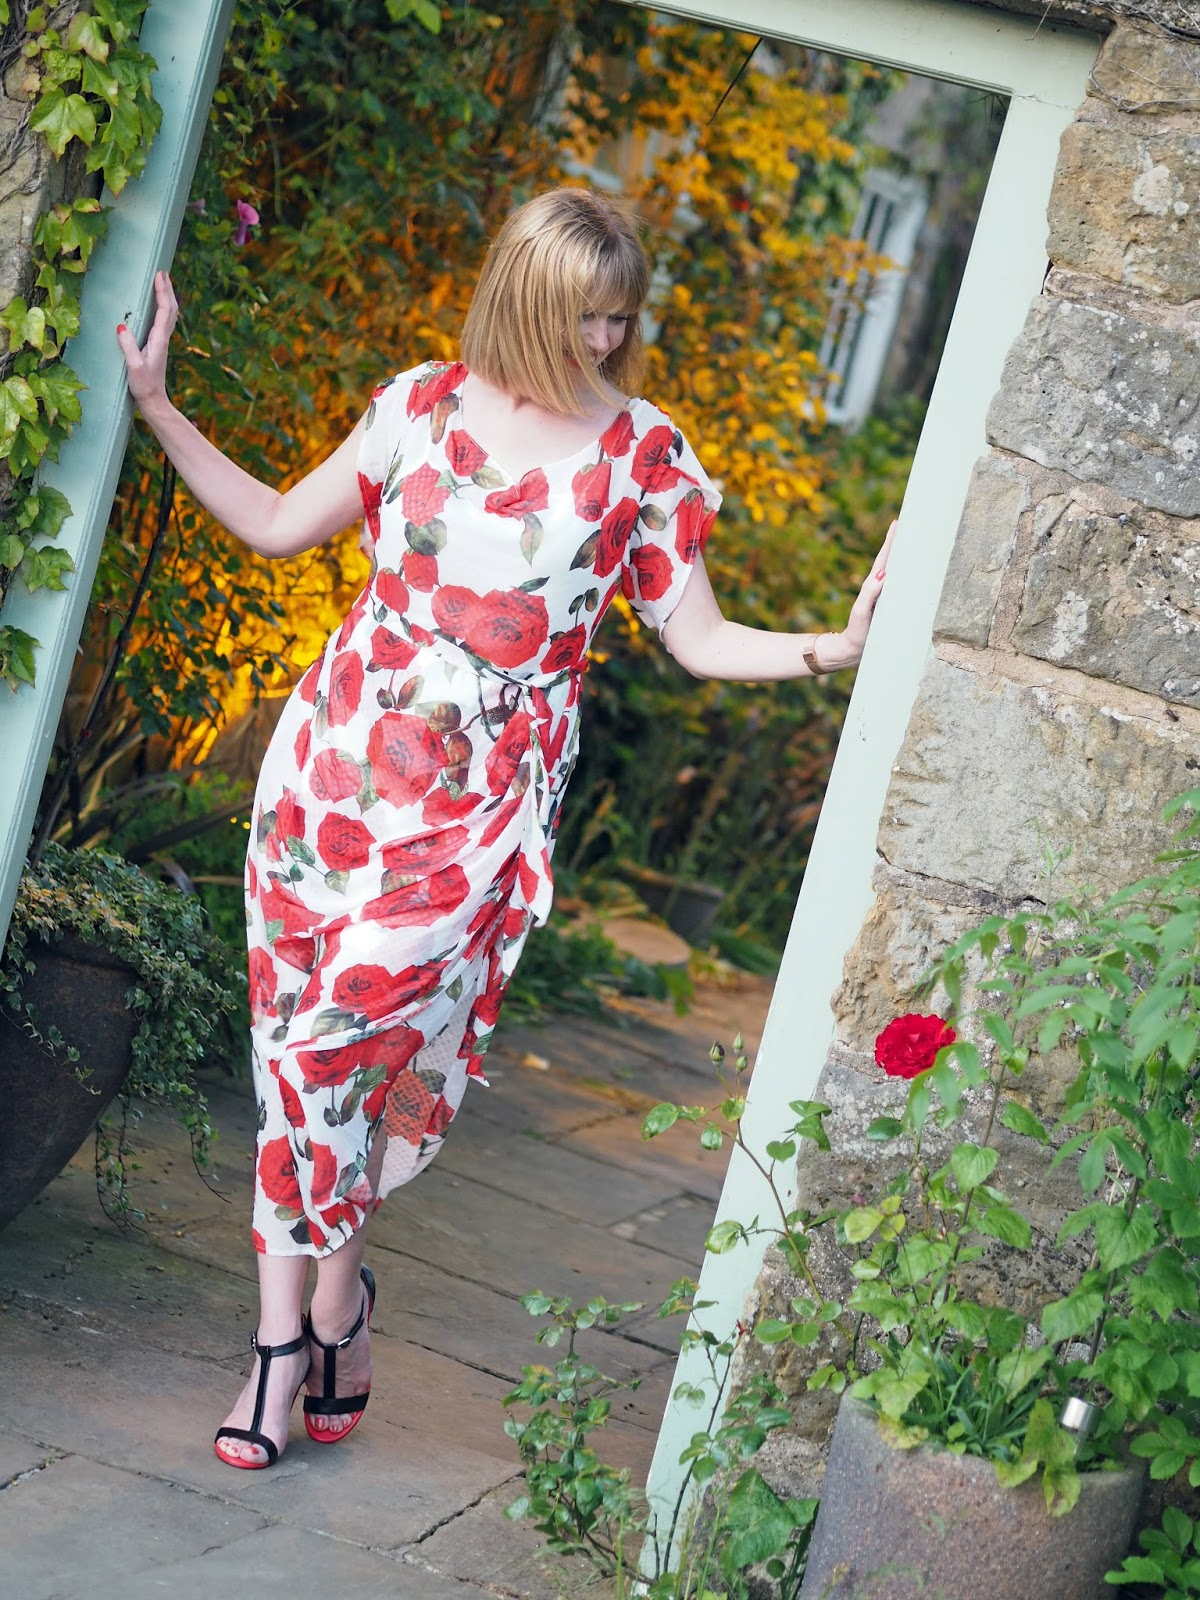 Alice's Pig White and red floral rose draped midi dress with red and black high-heeled sandals style over 40